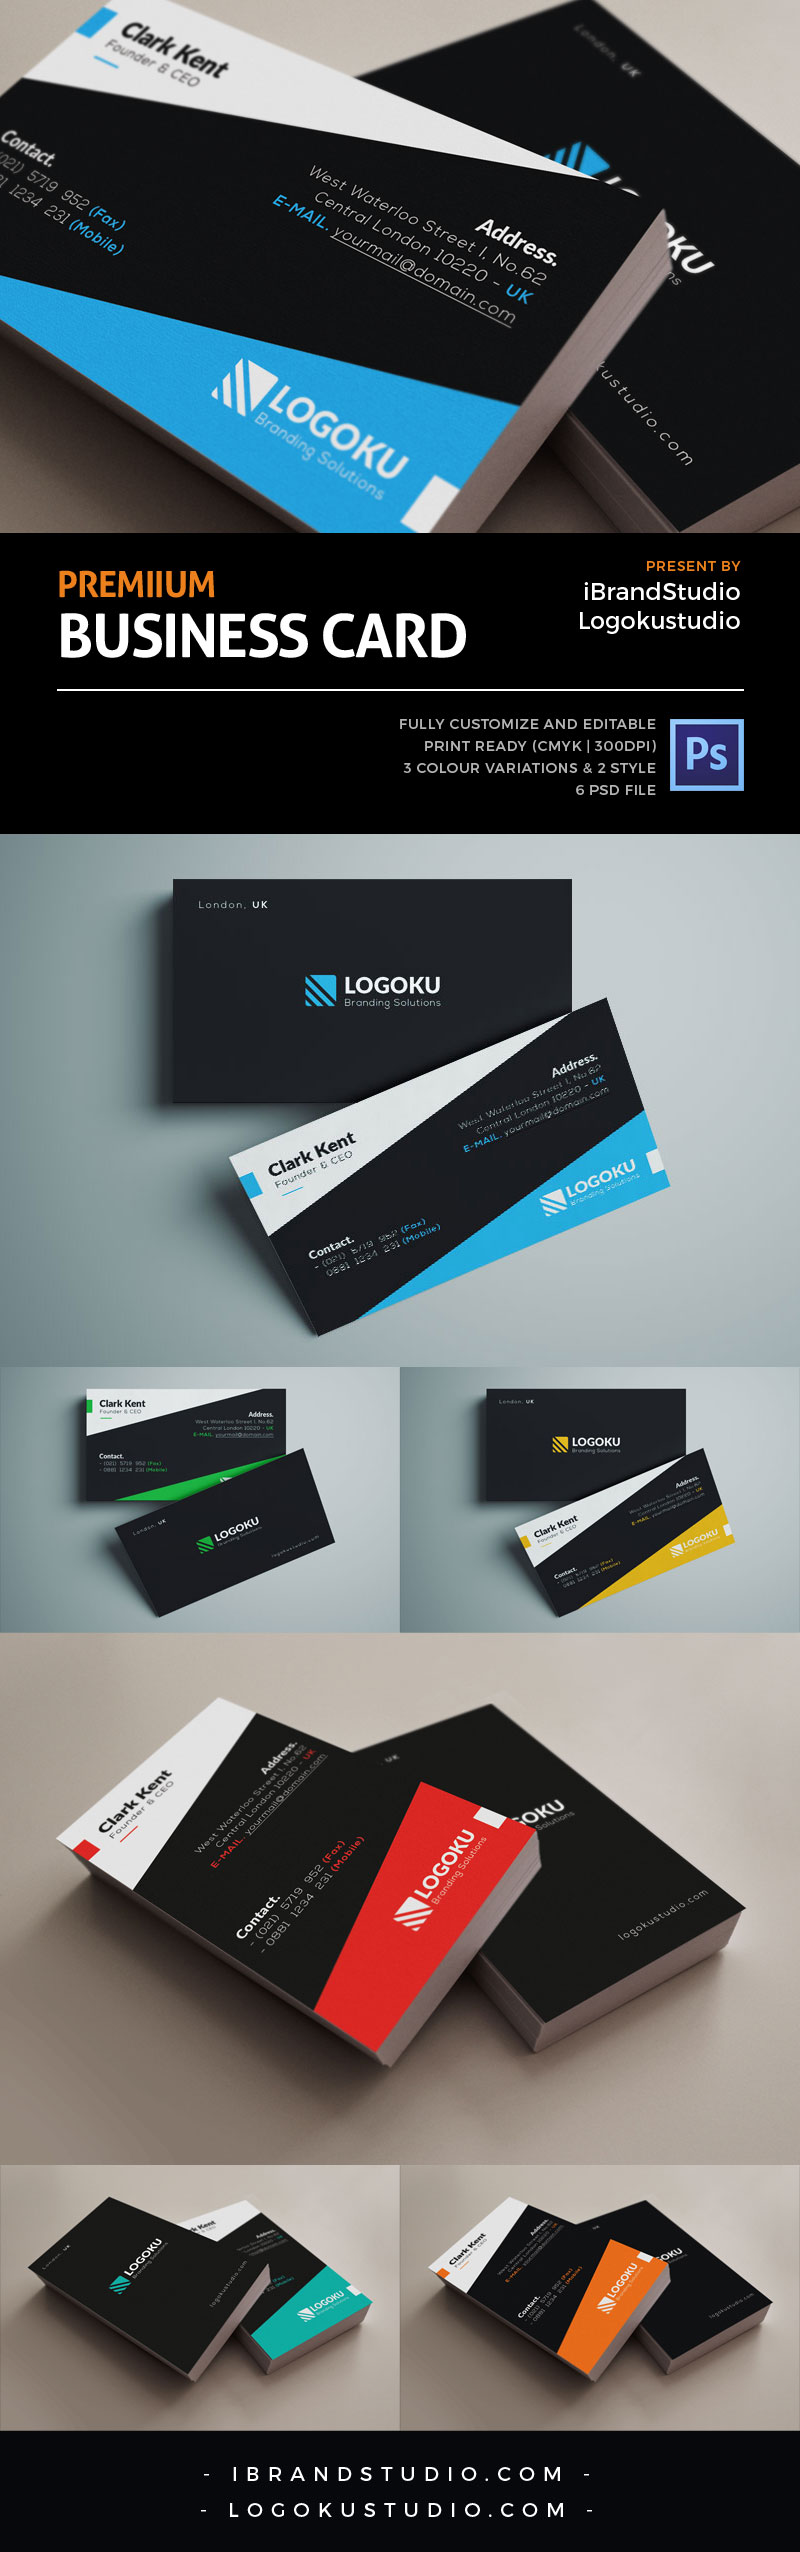 free vertical horizontal corporate business card template psd